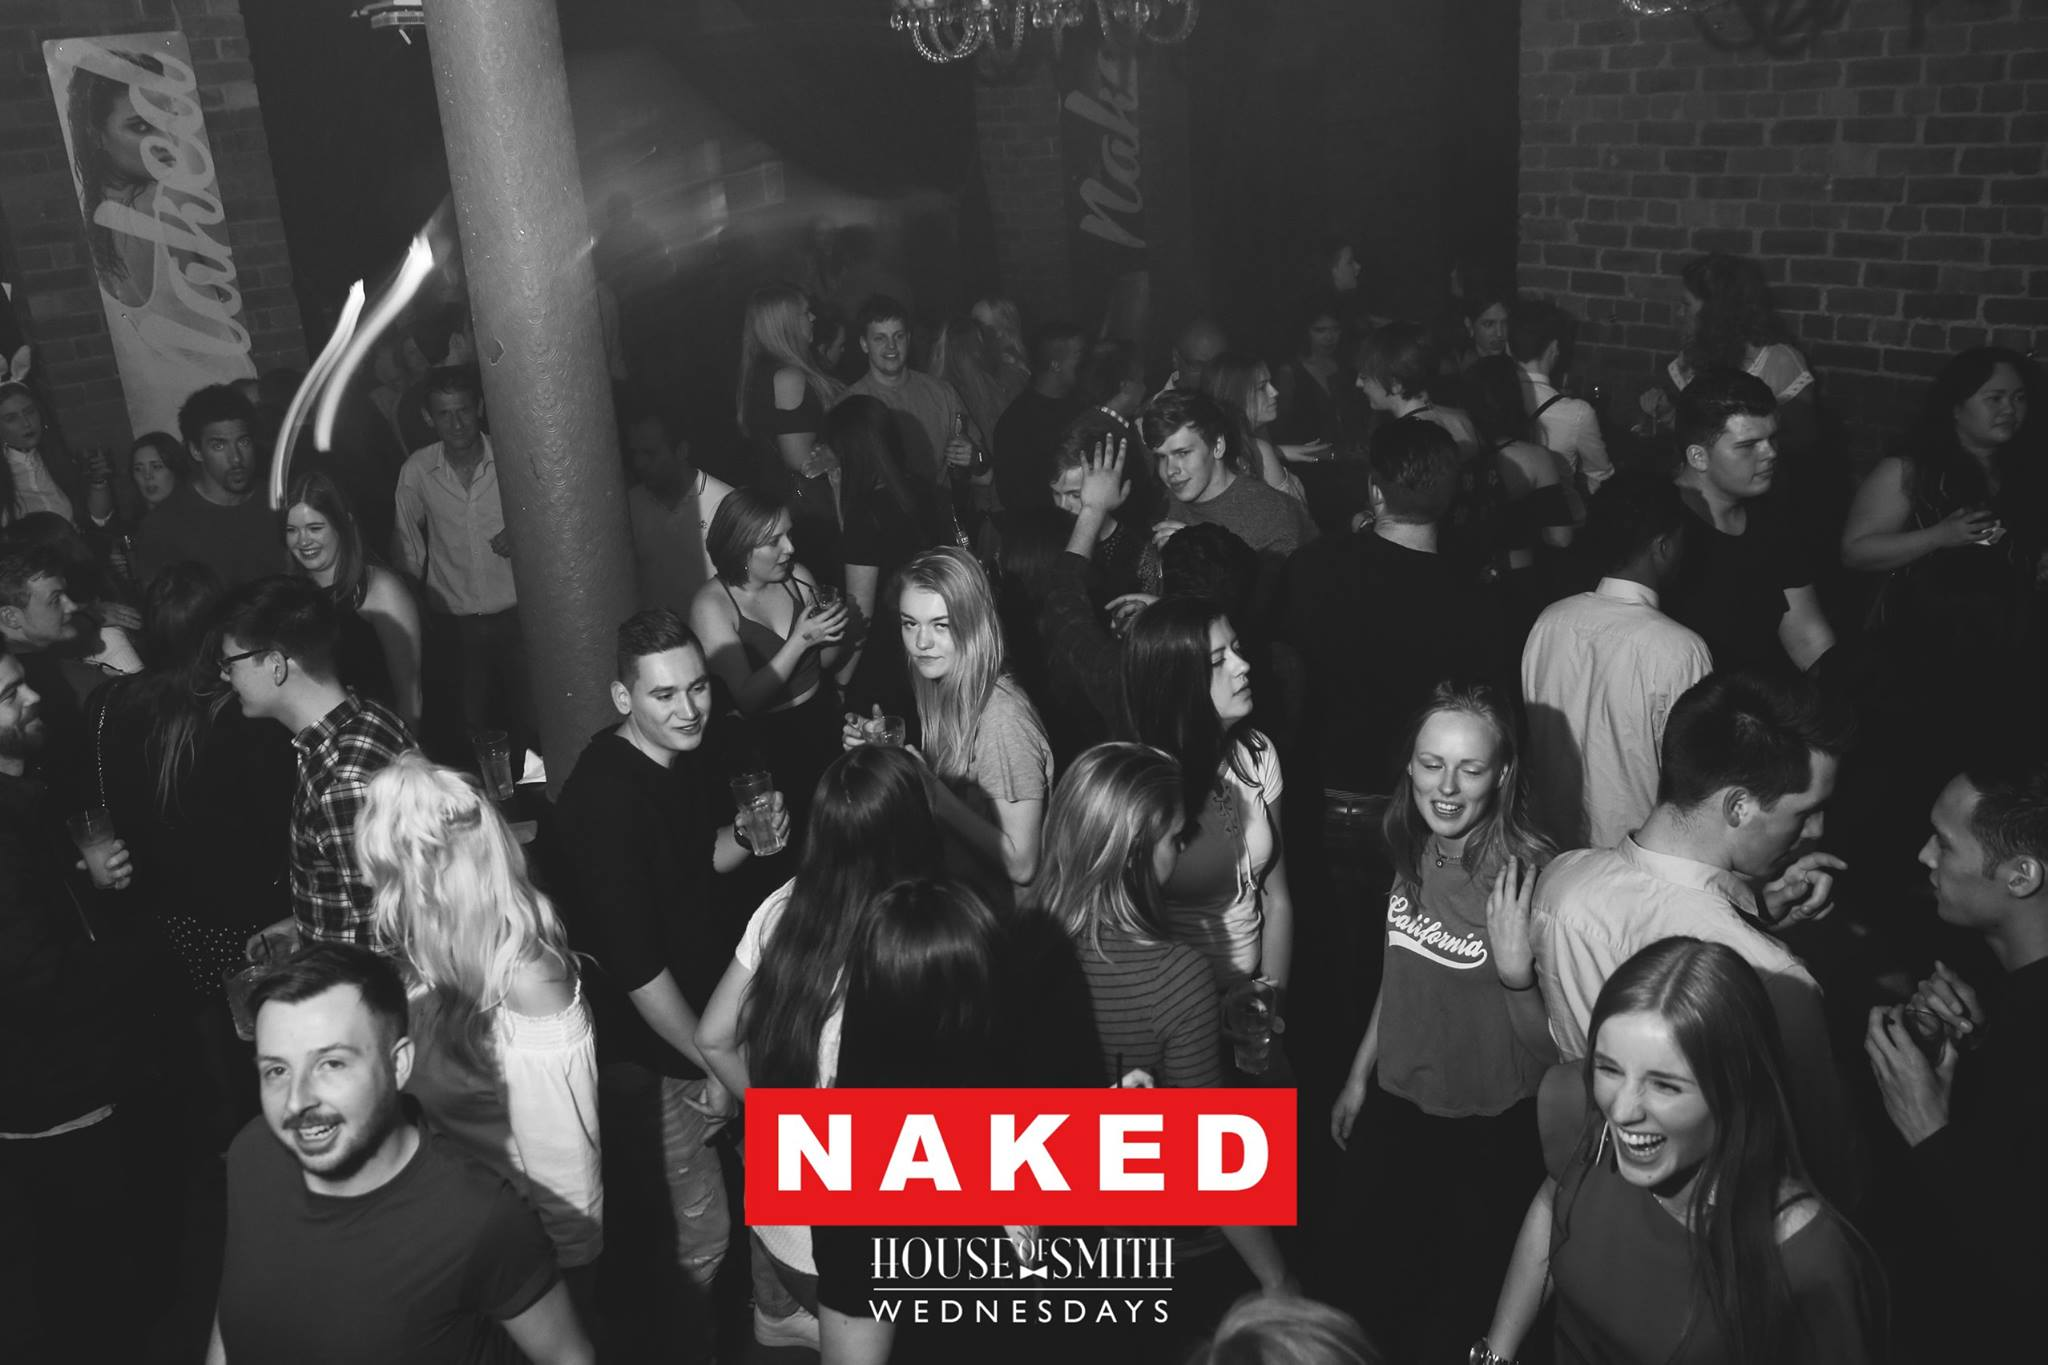 Club Night Guide to Newcastle Nightclubs, featuring a black and white image of people on the dance floor at House of Smith